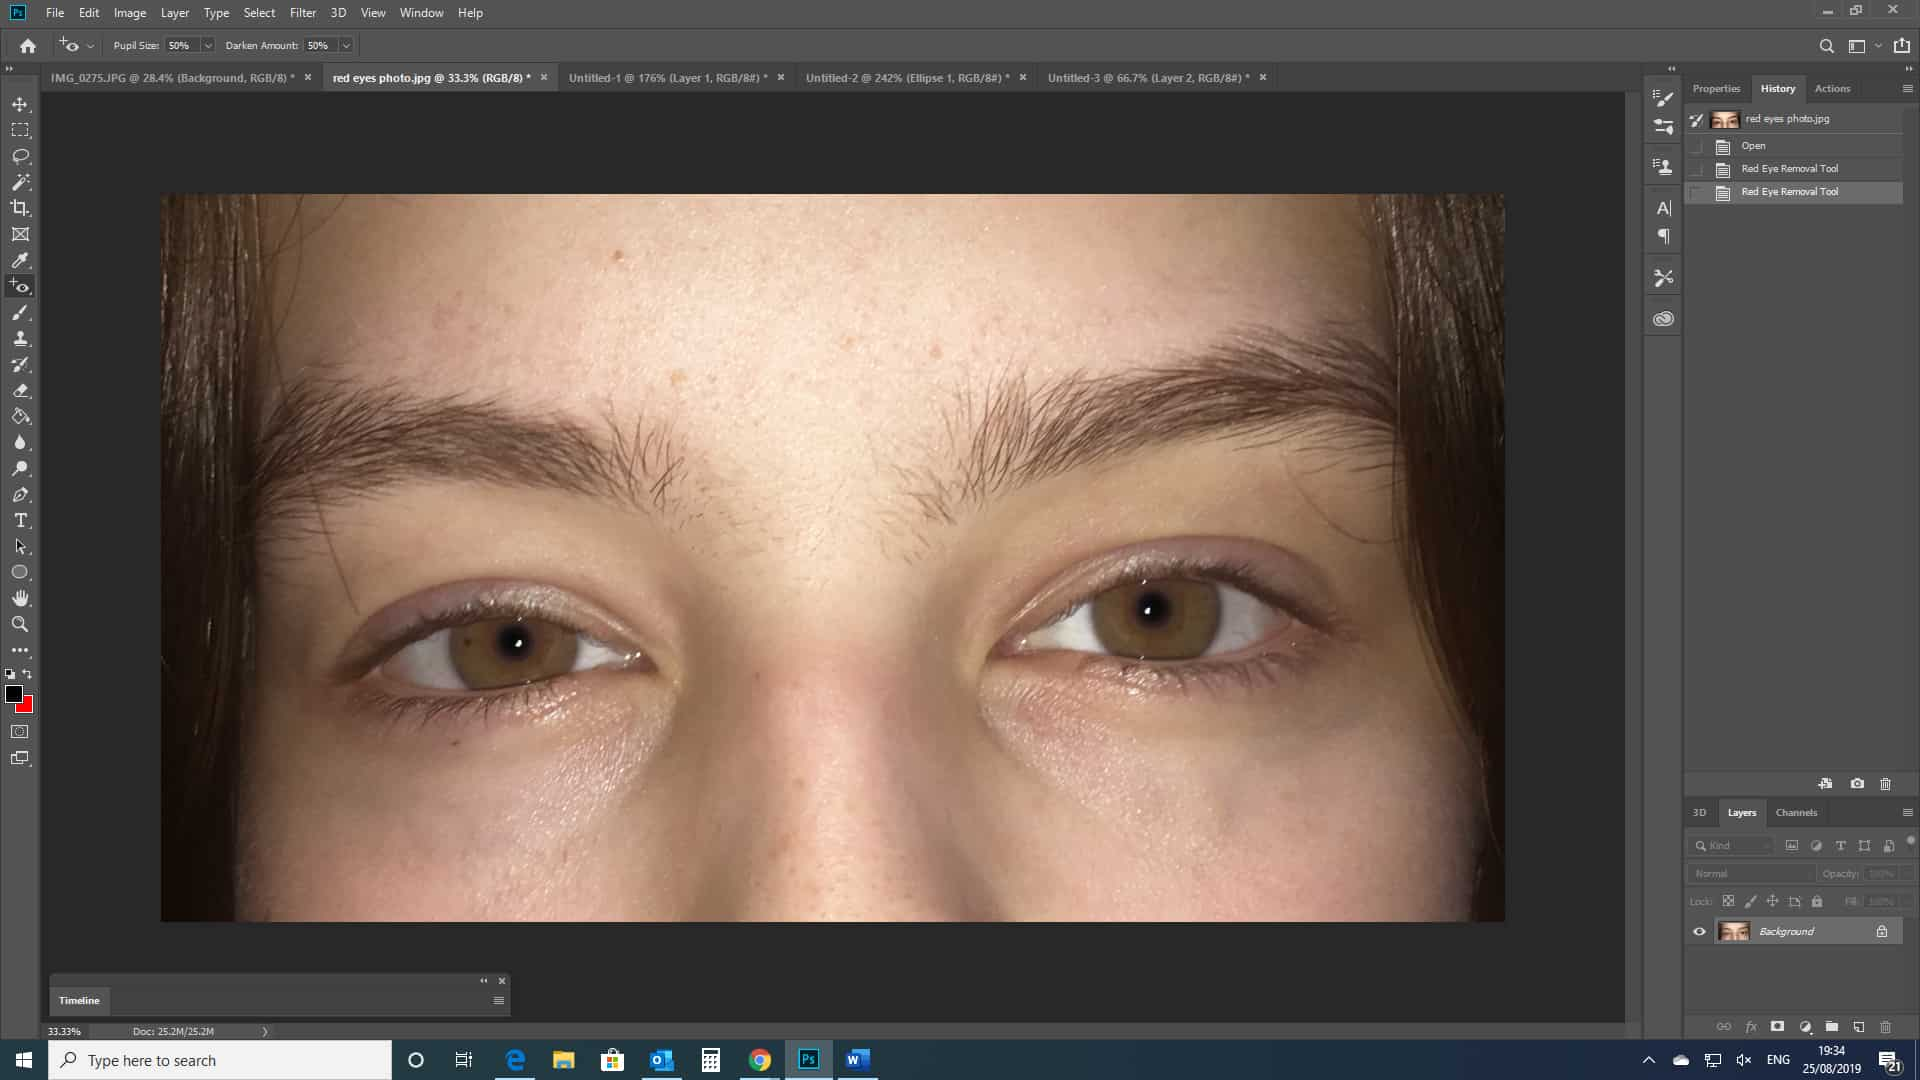 red-eye removed in photoshop